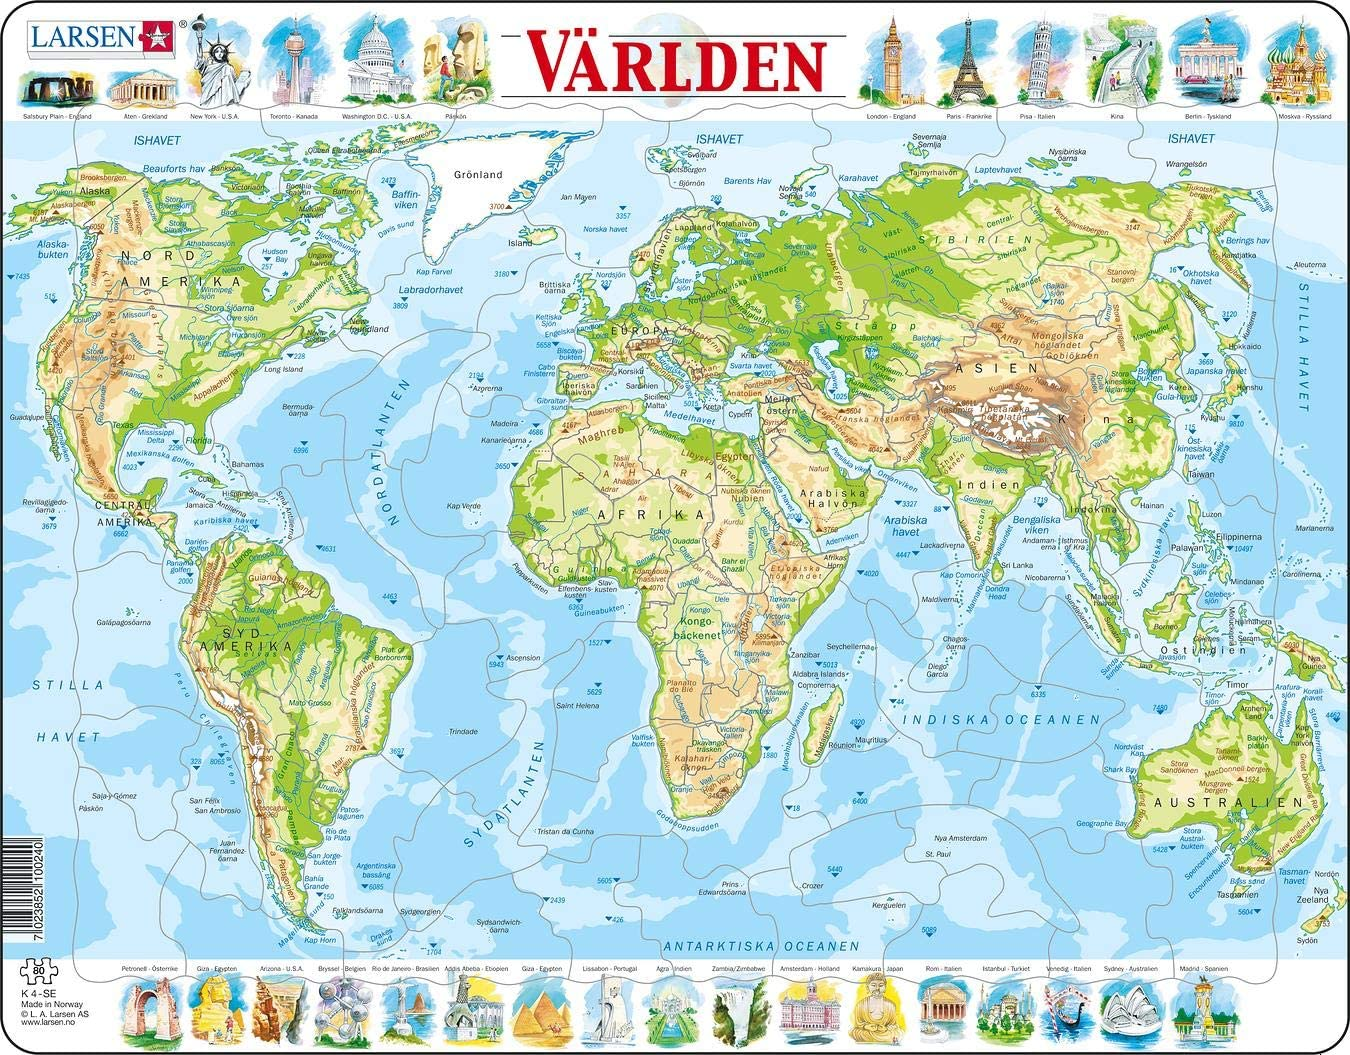 French Edition Jigsaw Puzzle with 80 Pieces Larsen K4 The World Physical Map